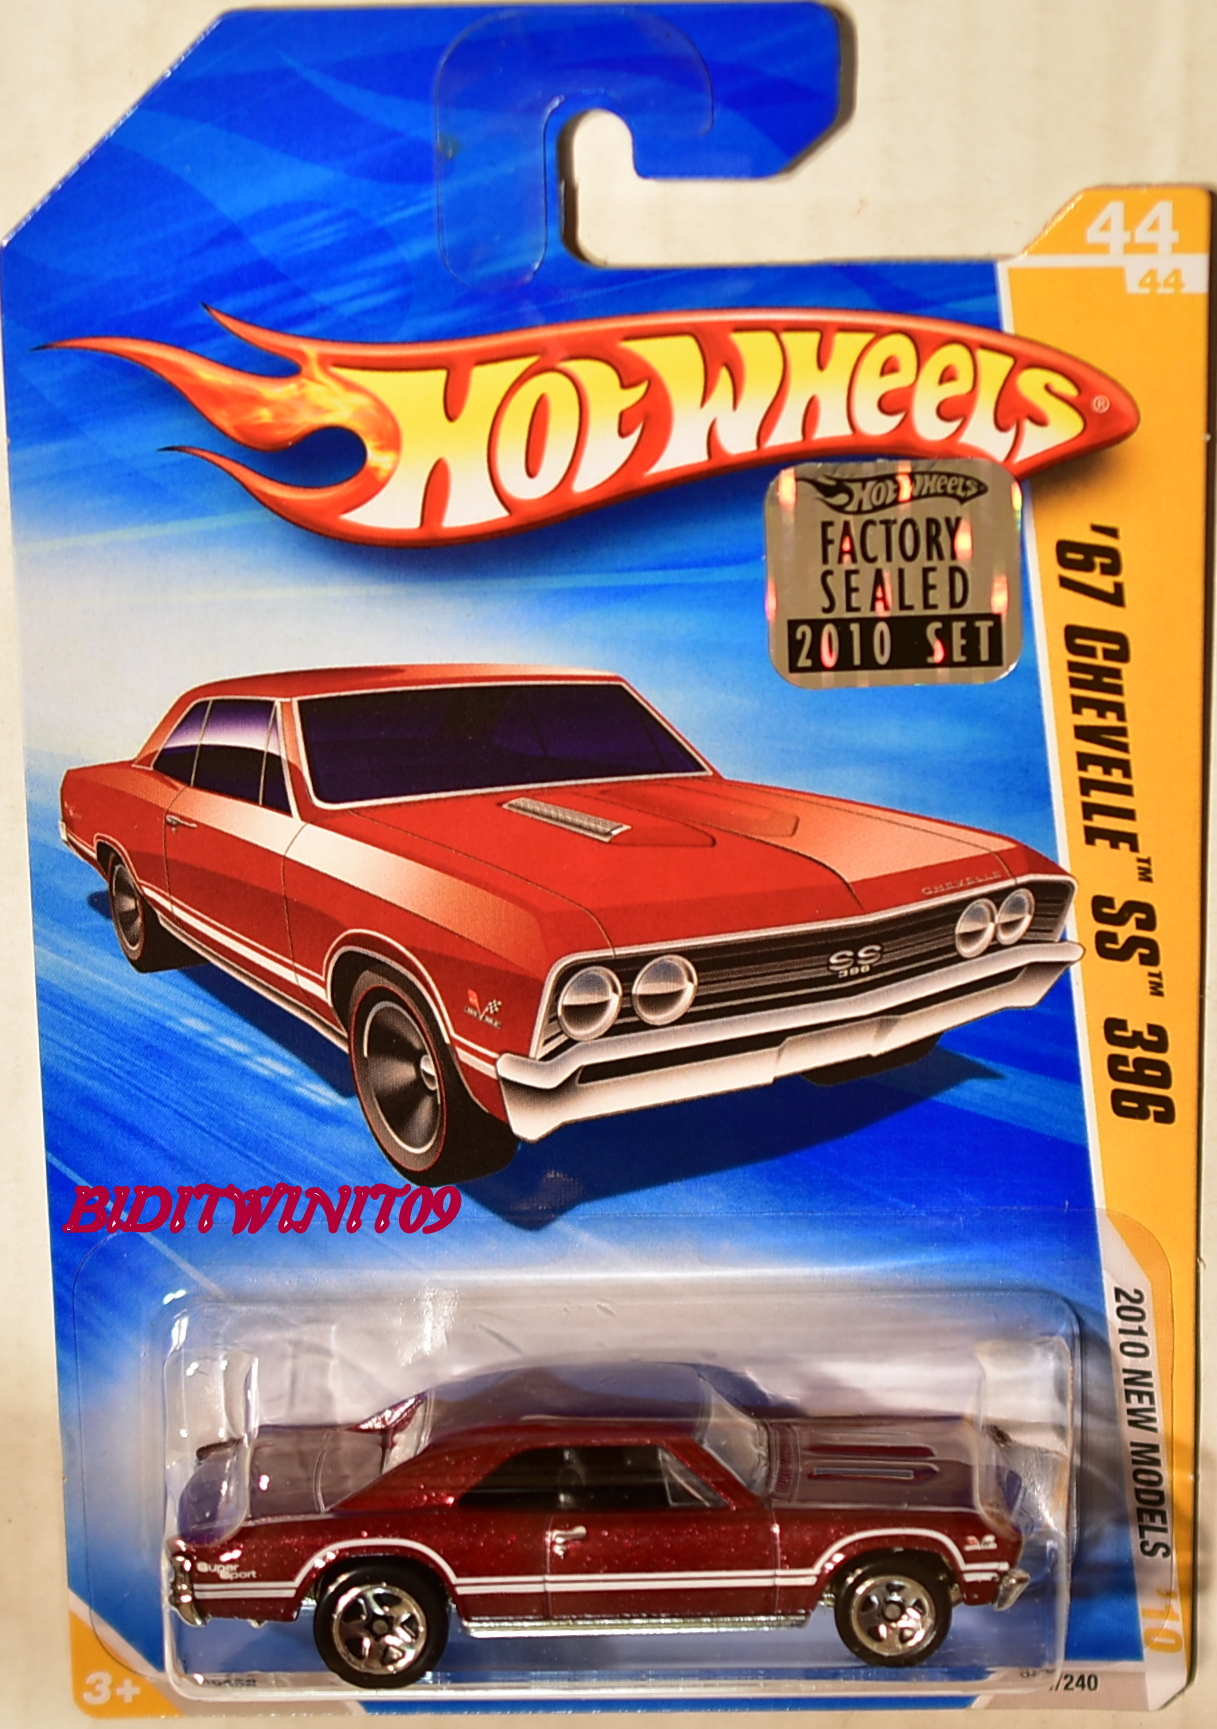 HOT WHEELS 2010 NEW MODELS '67 CHEVELLE SS 396 #44/44 RED FACTORY SEALED E+